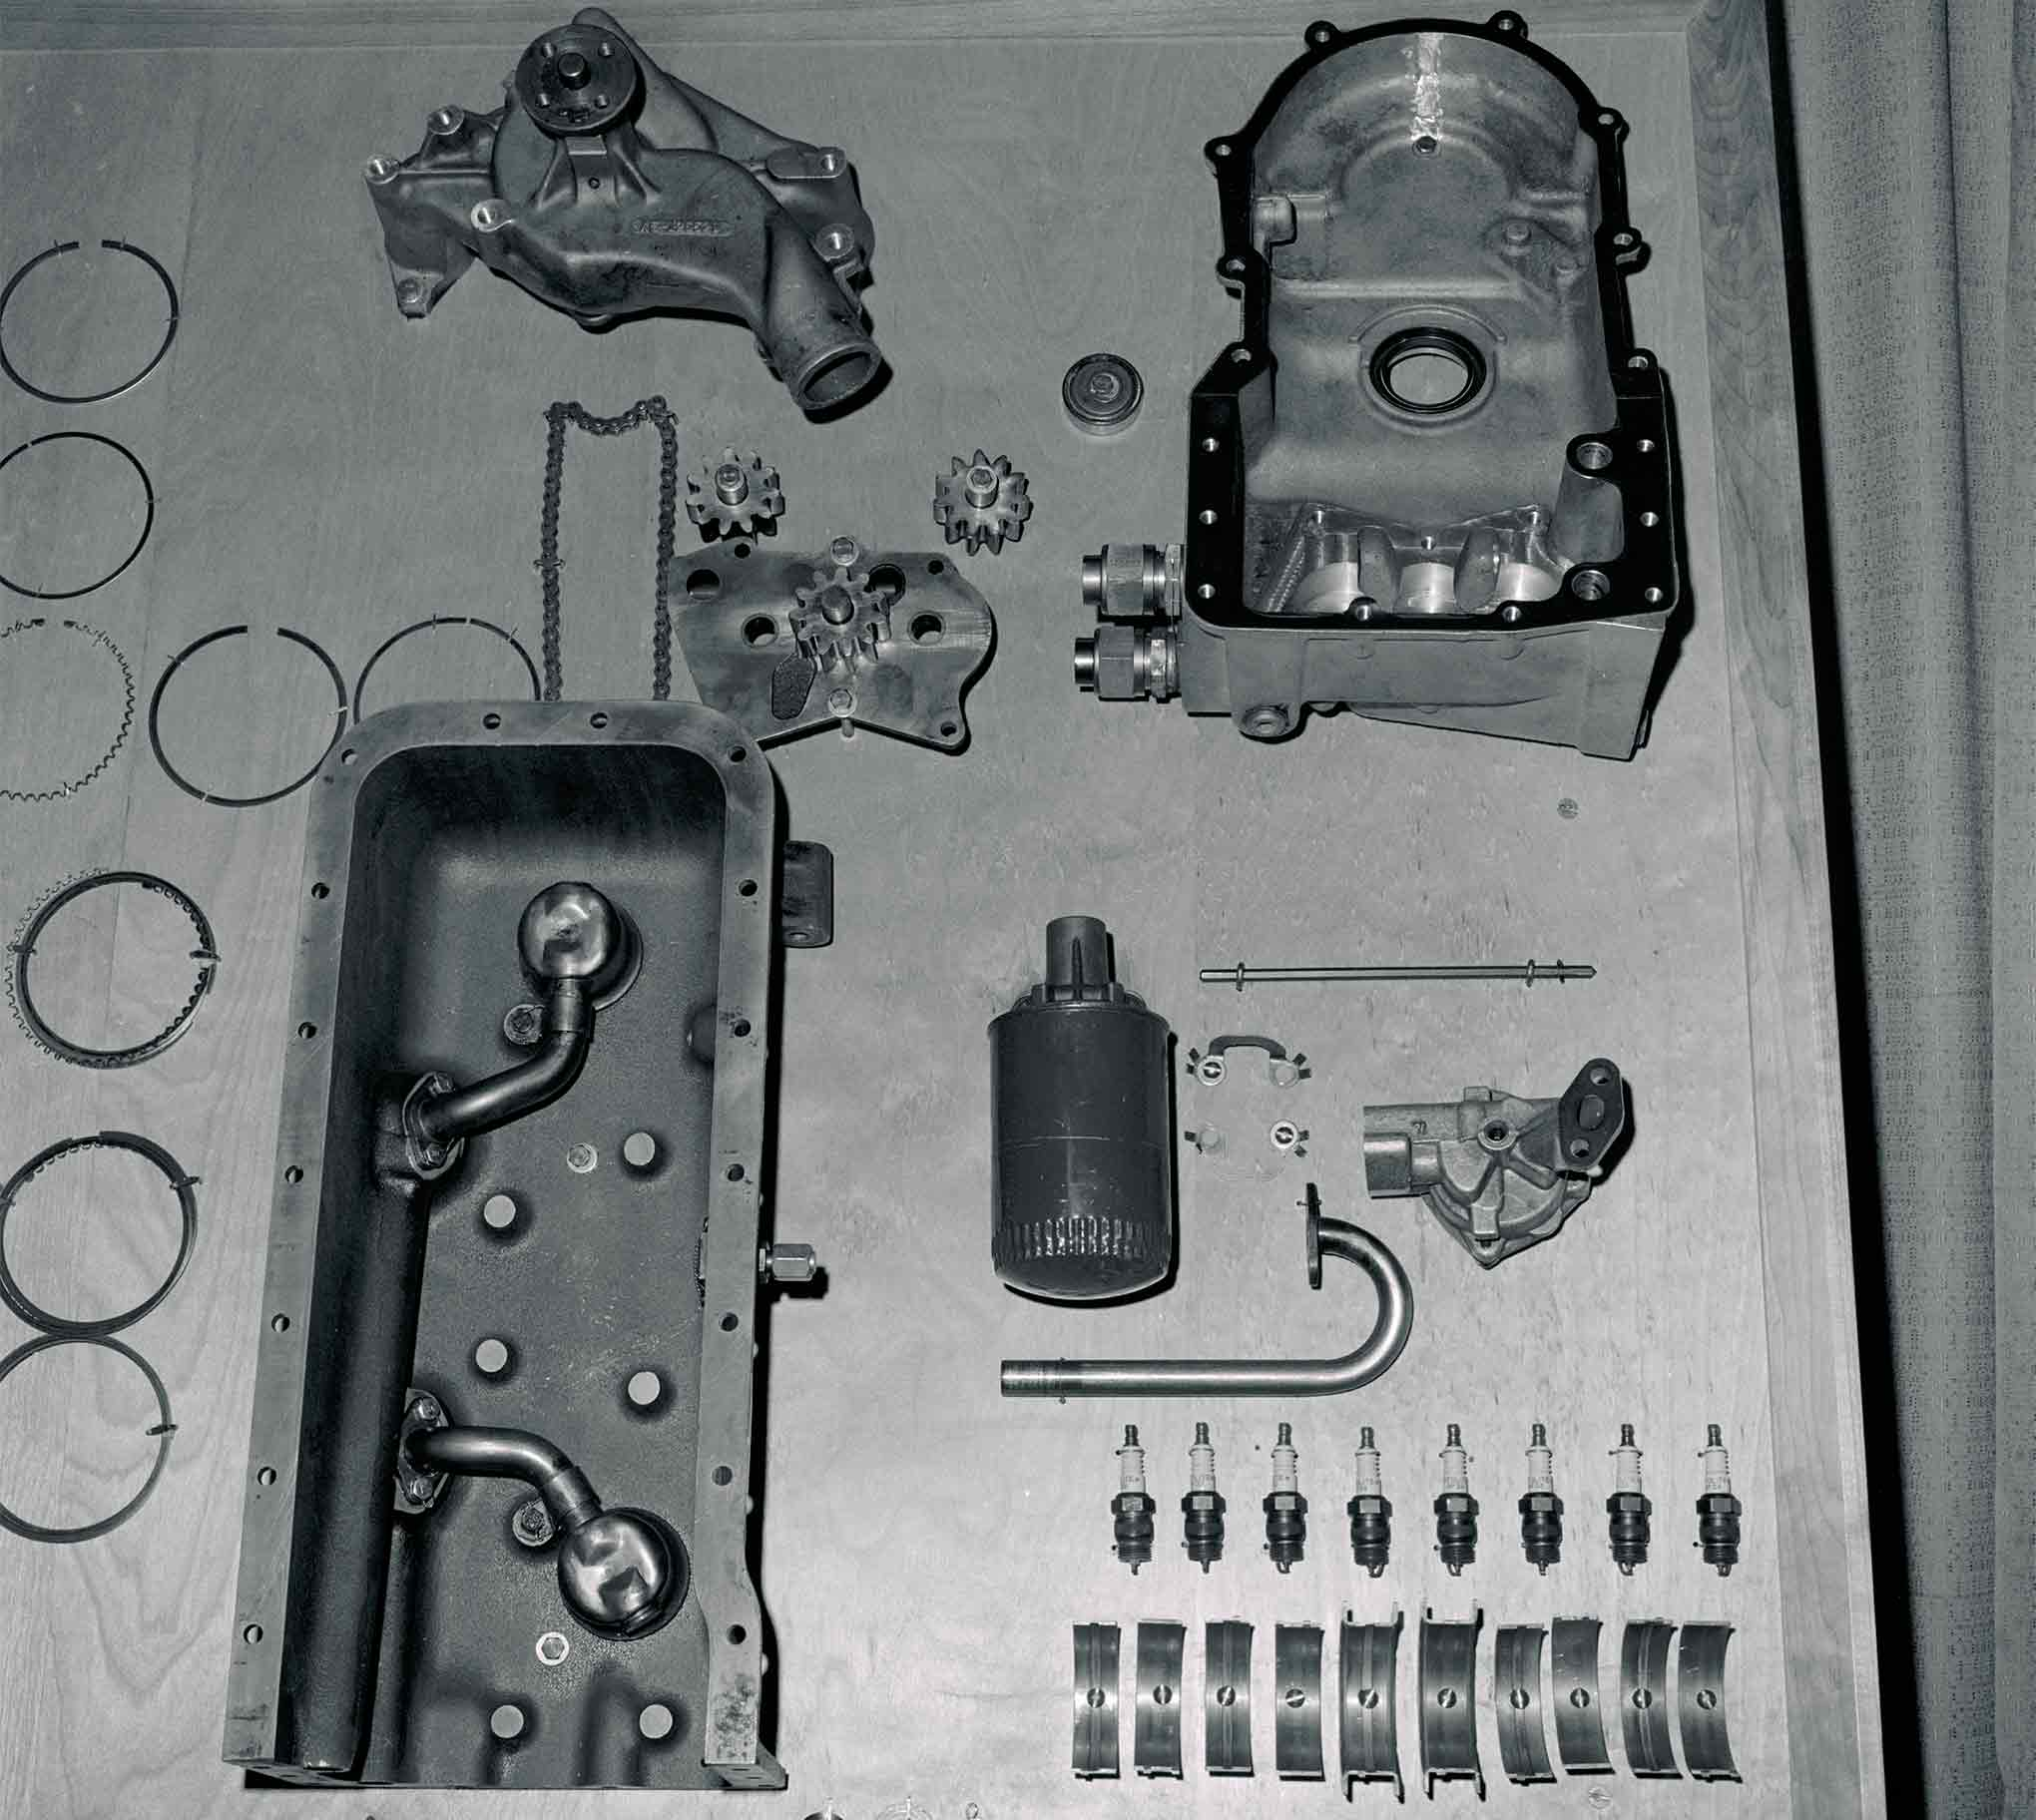 Virtually every component seen is either aluminum or, as in the case of the oil pan, magnesium. All are expensive and highly collectible today. The upper-right casting is the front cover, which ties into the oil pan at the front of the block. The aluminum water pump nests over the upper portion of the cover. Combustion chambers in the heads were fully machined.